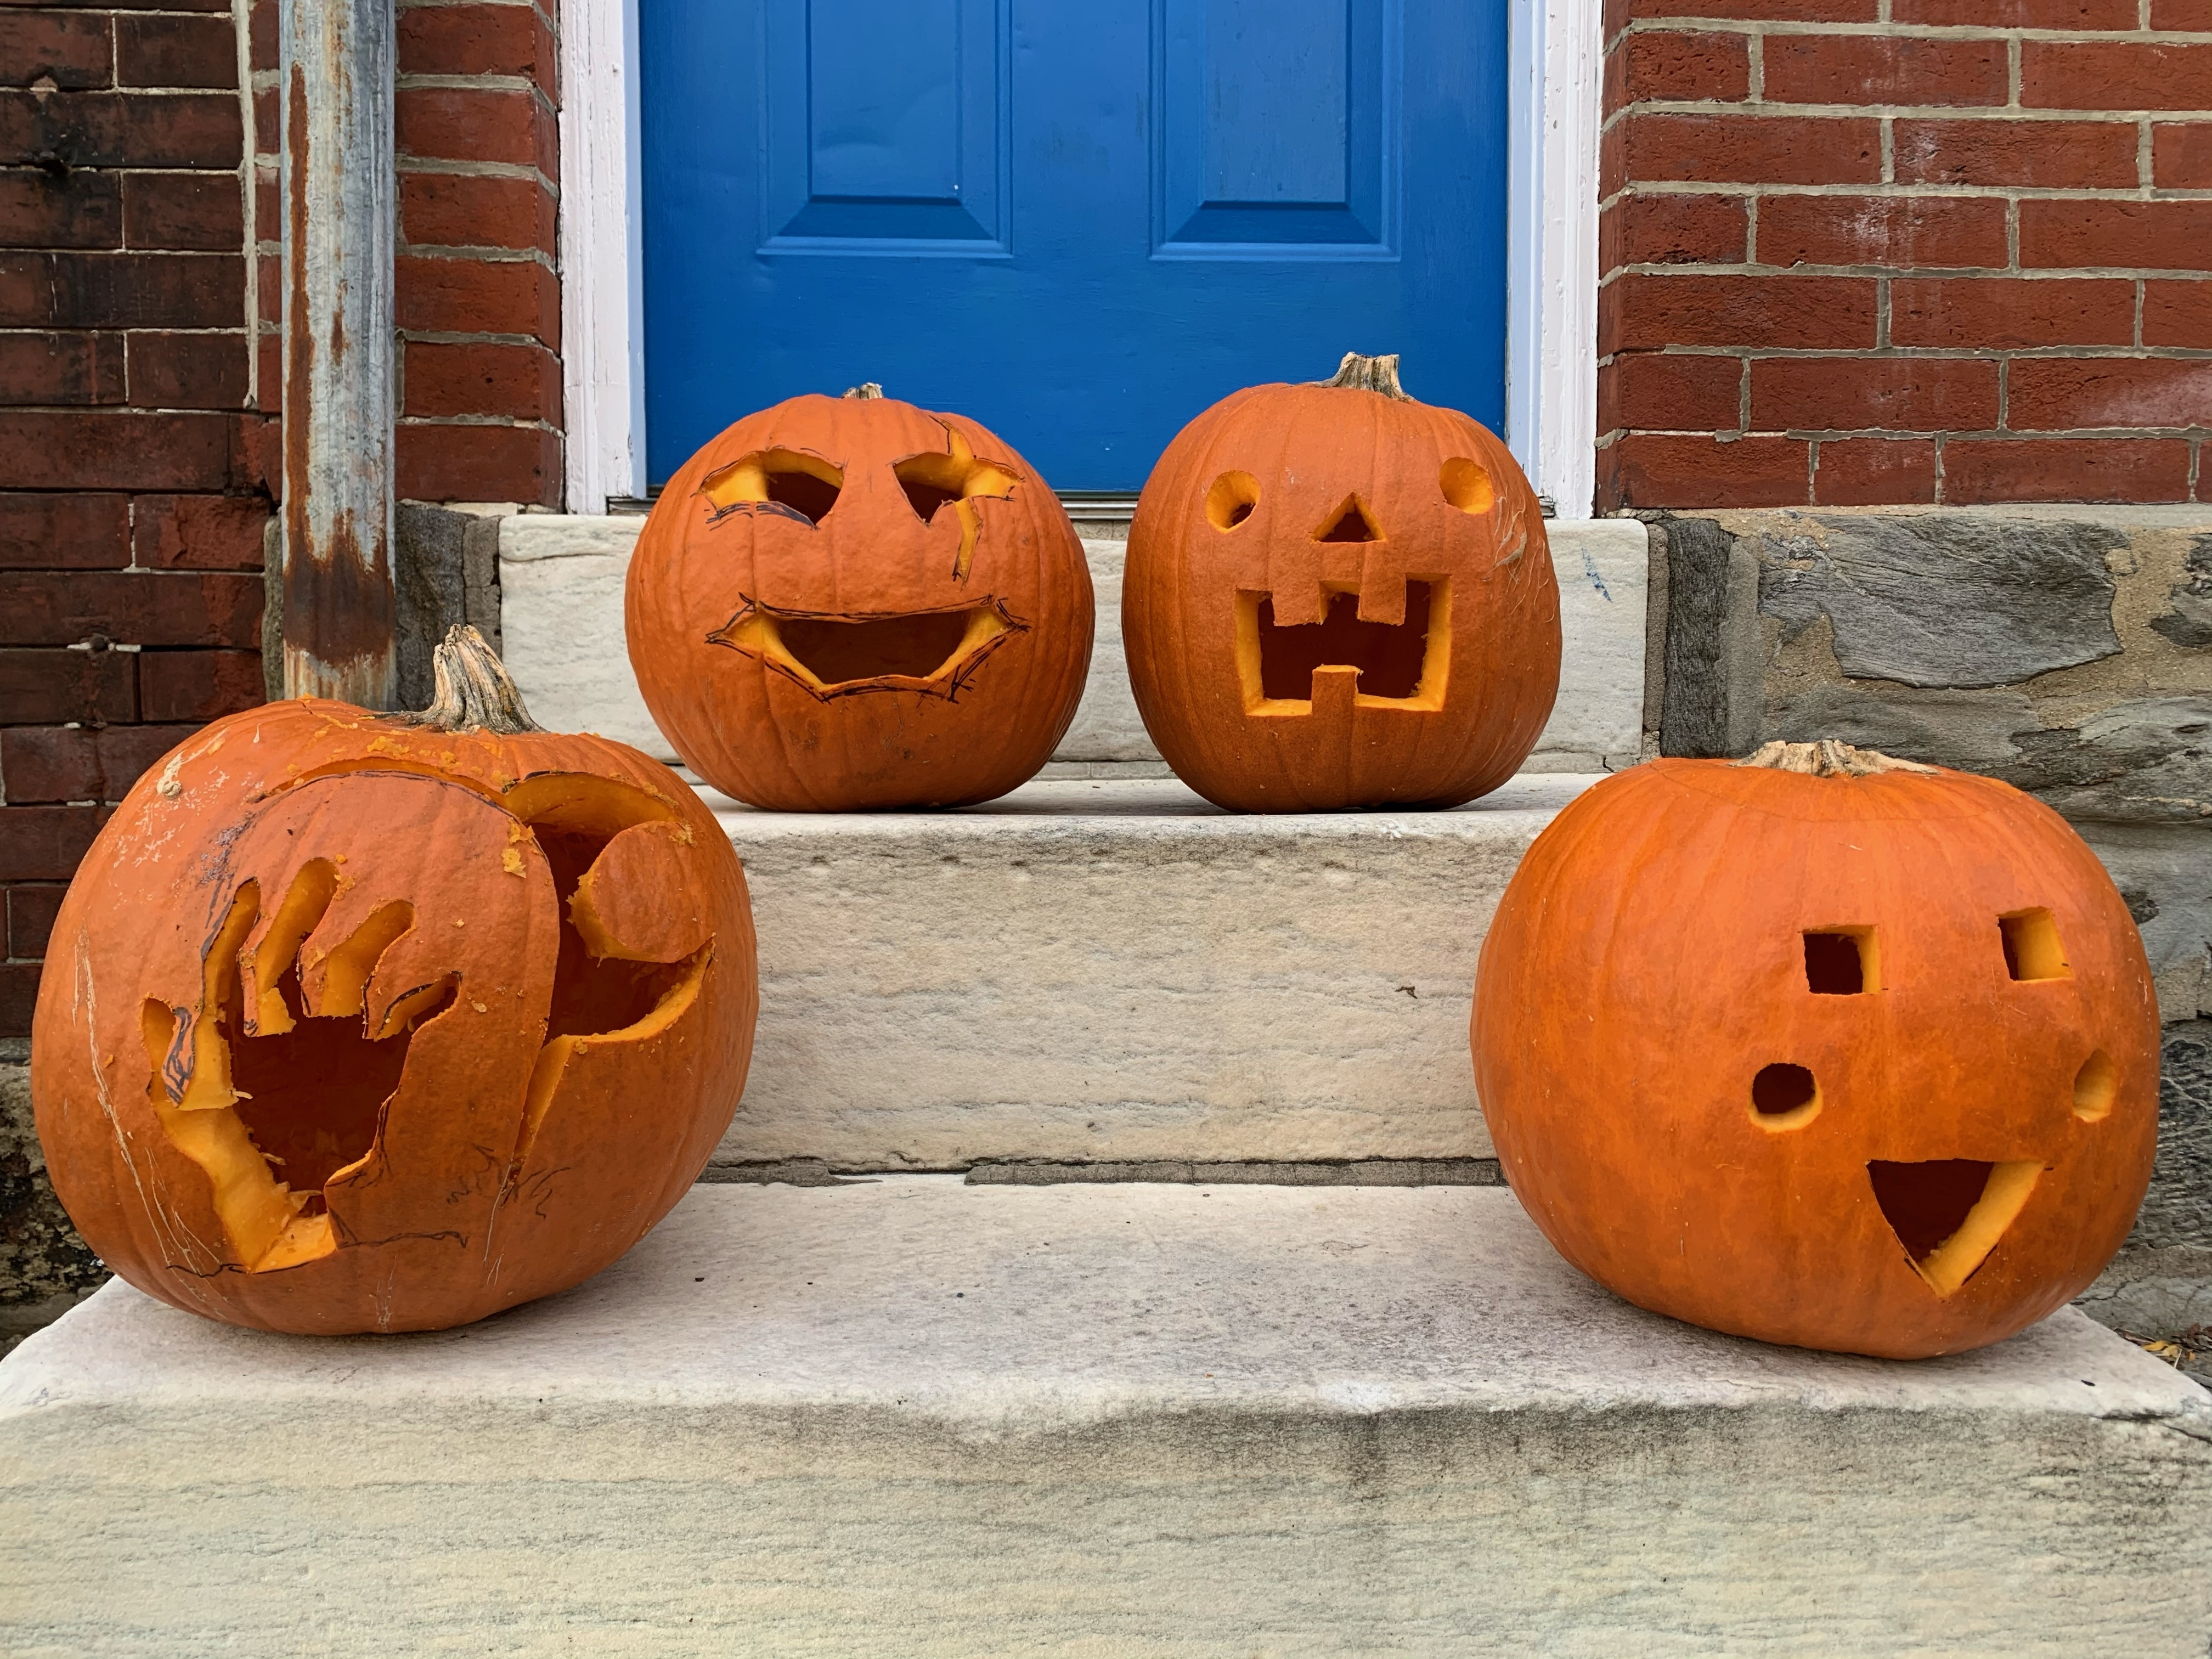 Four of the carved pumpkins sitting on a stoop